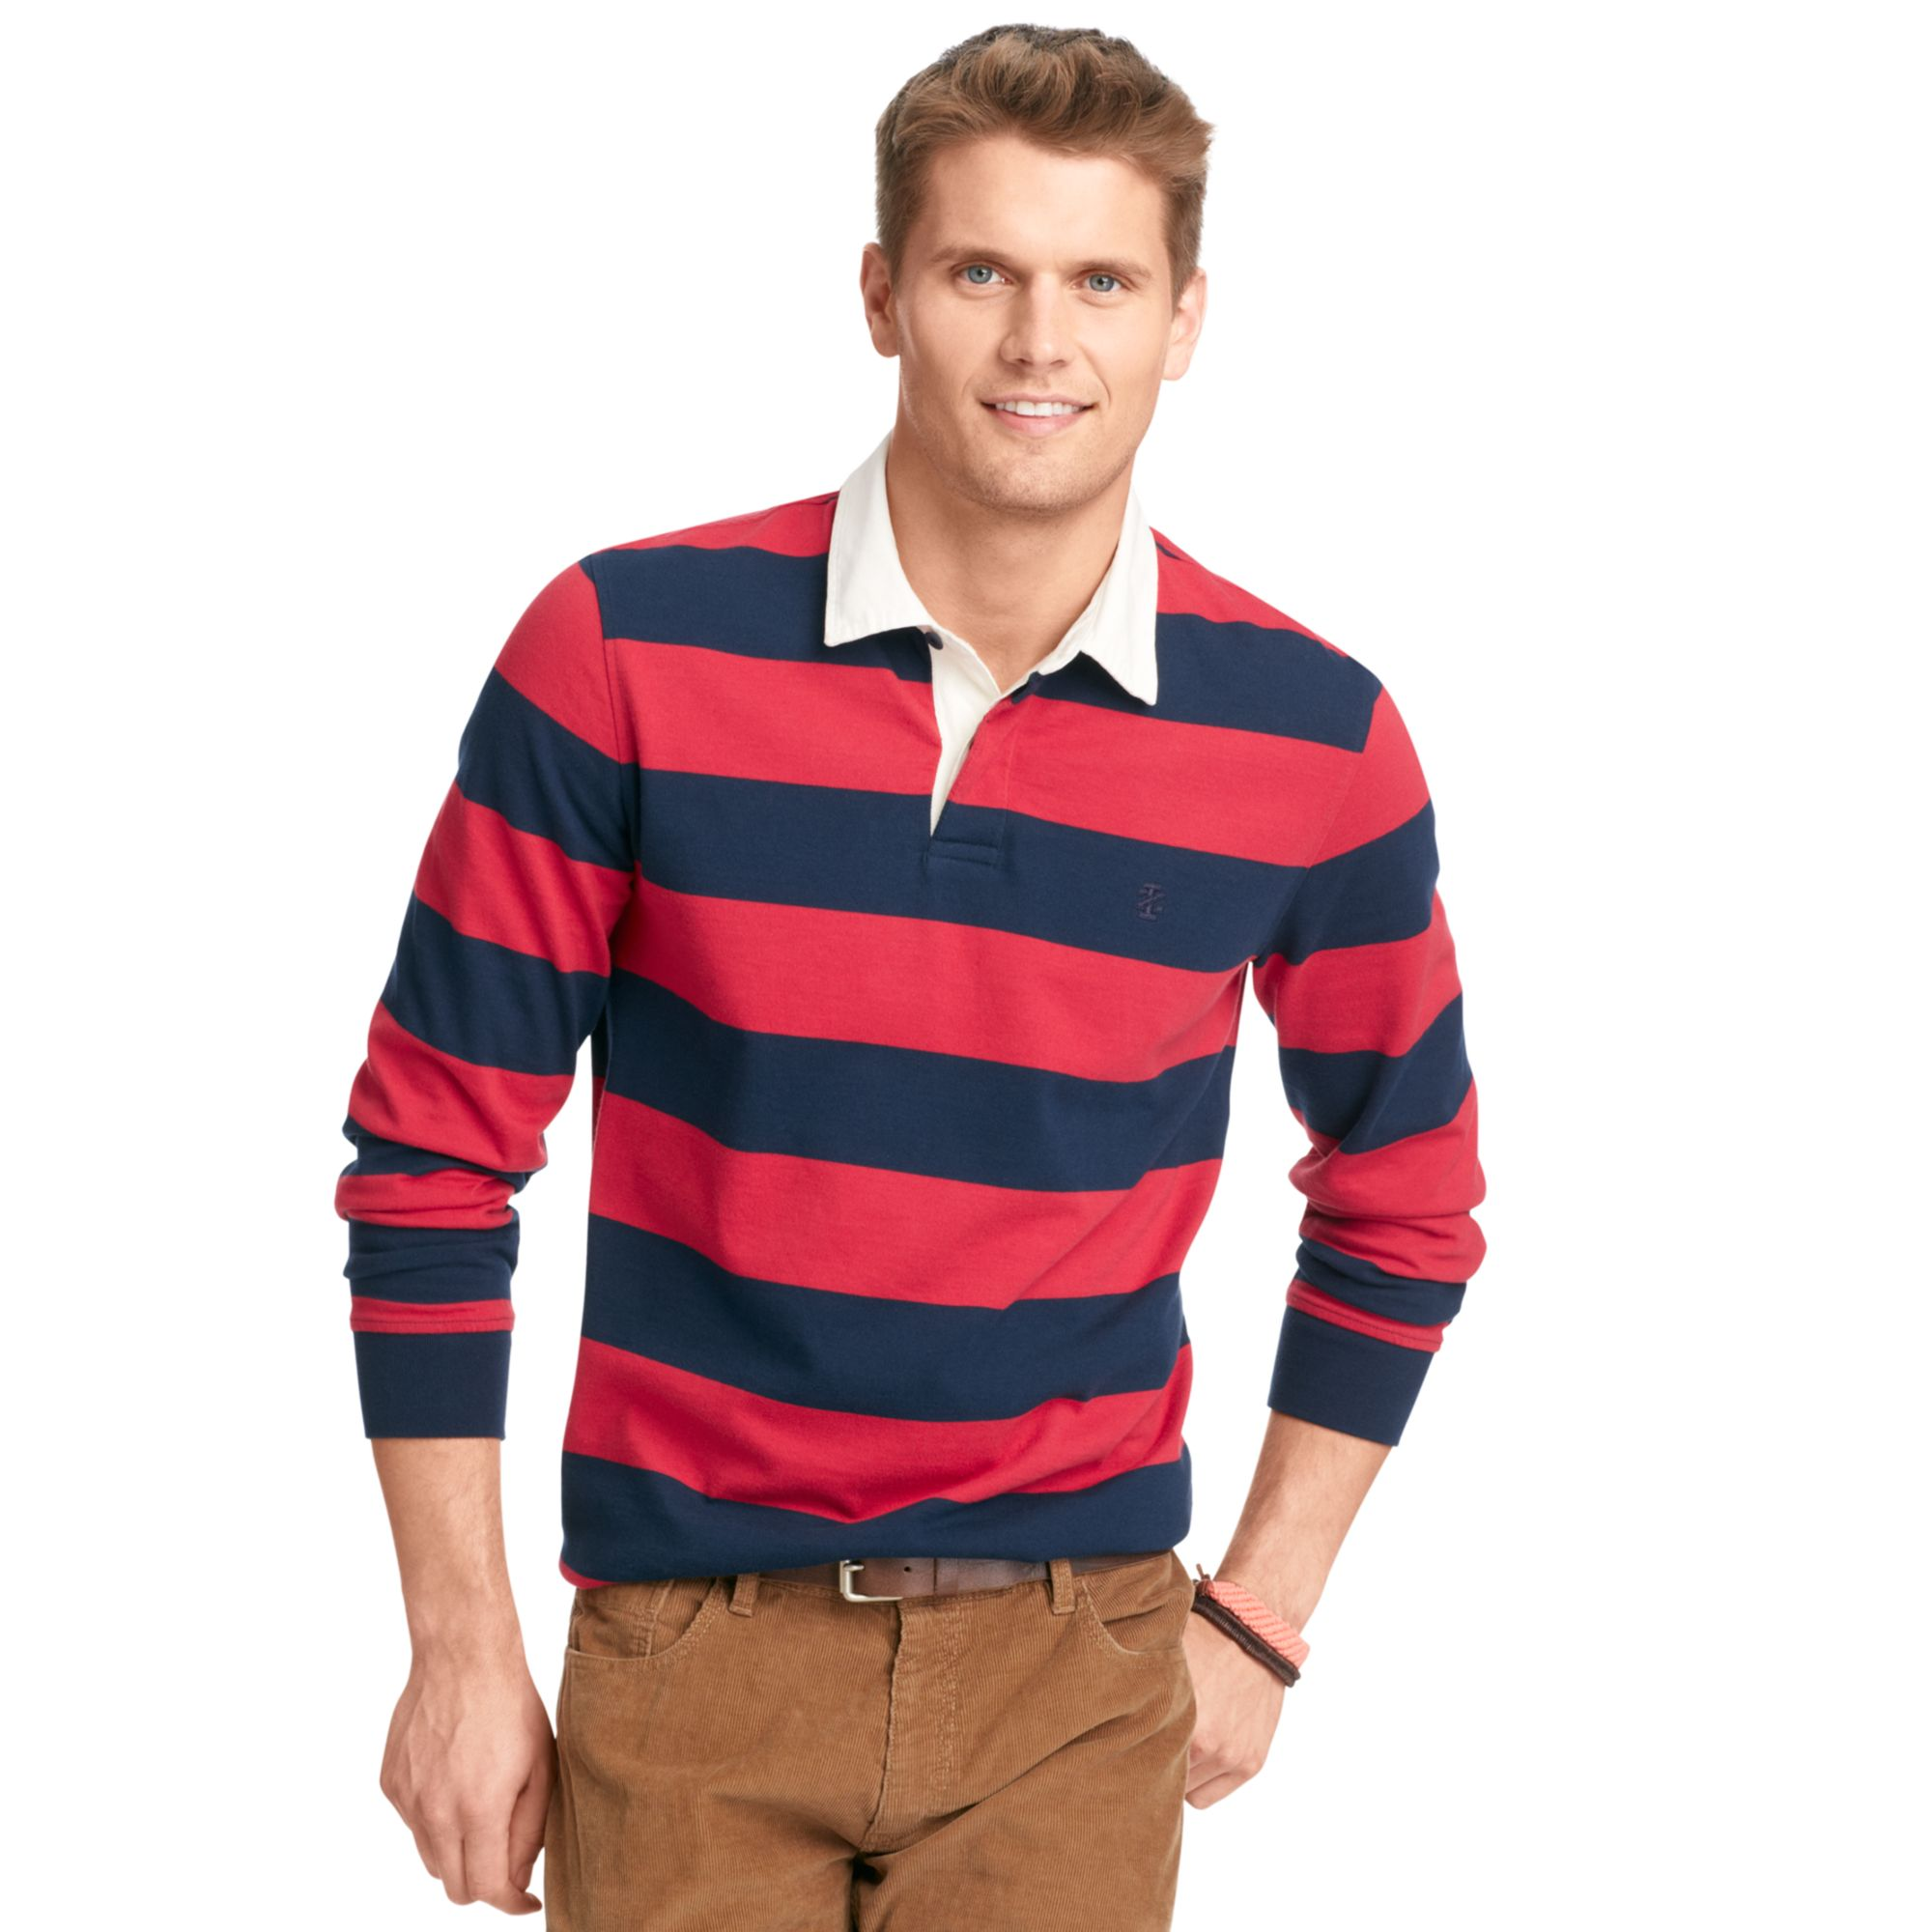 Rugby Clothing Stores Uk